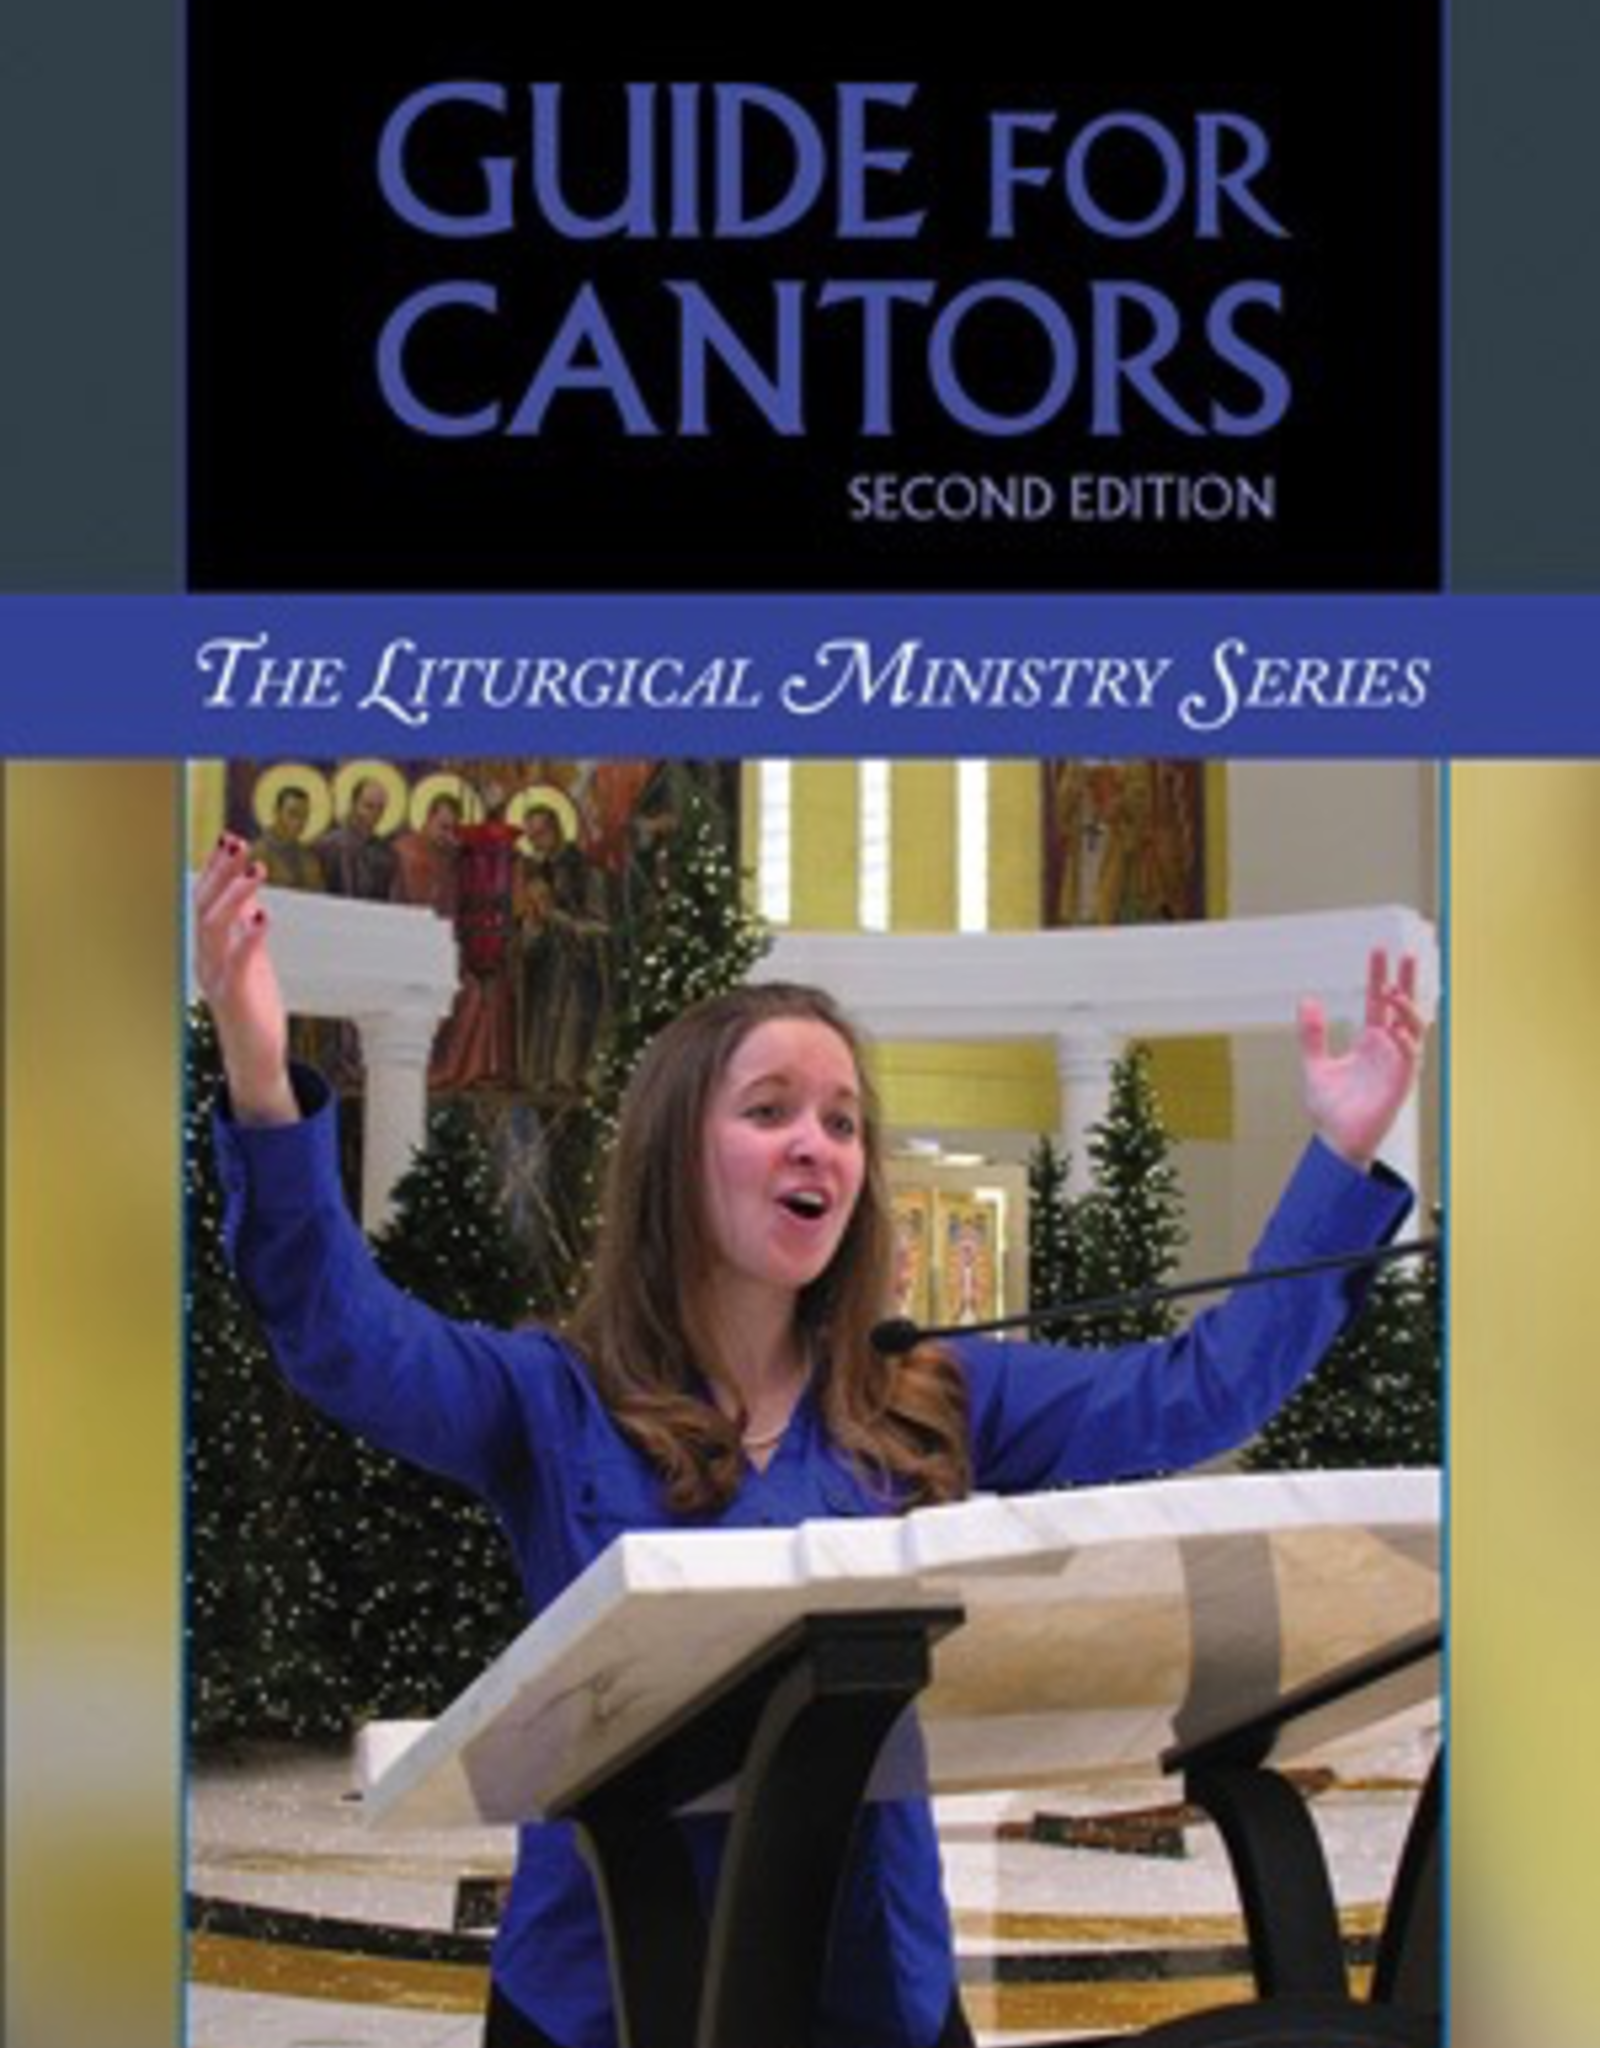 Liturgical Training Press Guide for Cantors, Second Edition, by Paul Turner and Jennifer Breedlove (paperback)